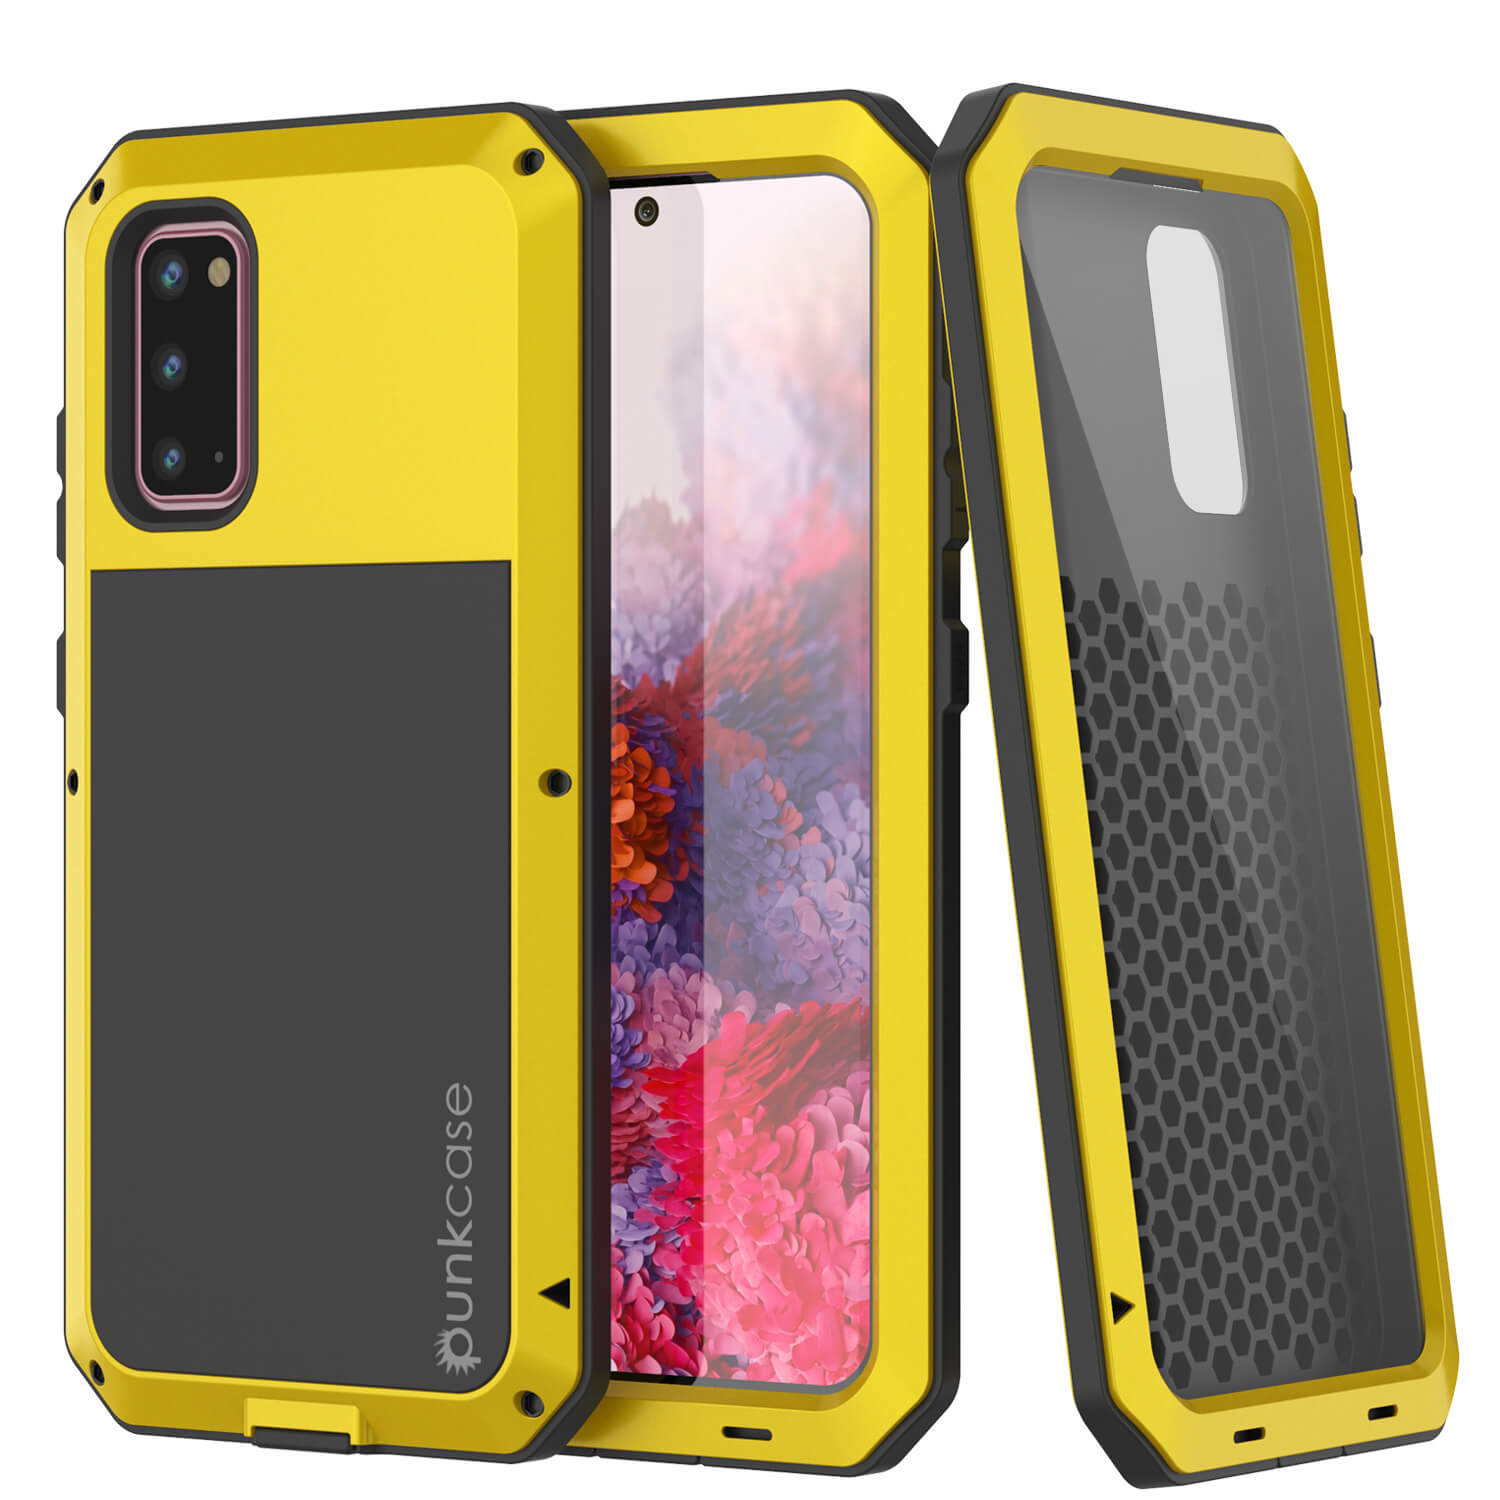 Galaxy s20 Metal Case, Heavy Duty Military Grade Rugged Armor Cover [Neon]